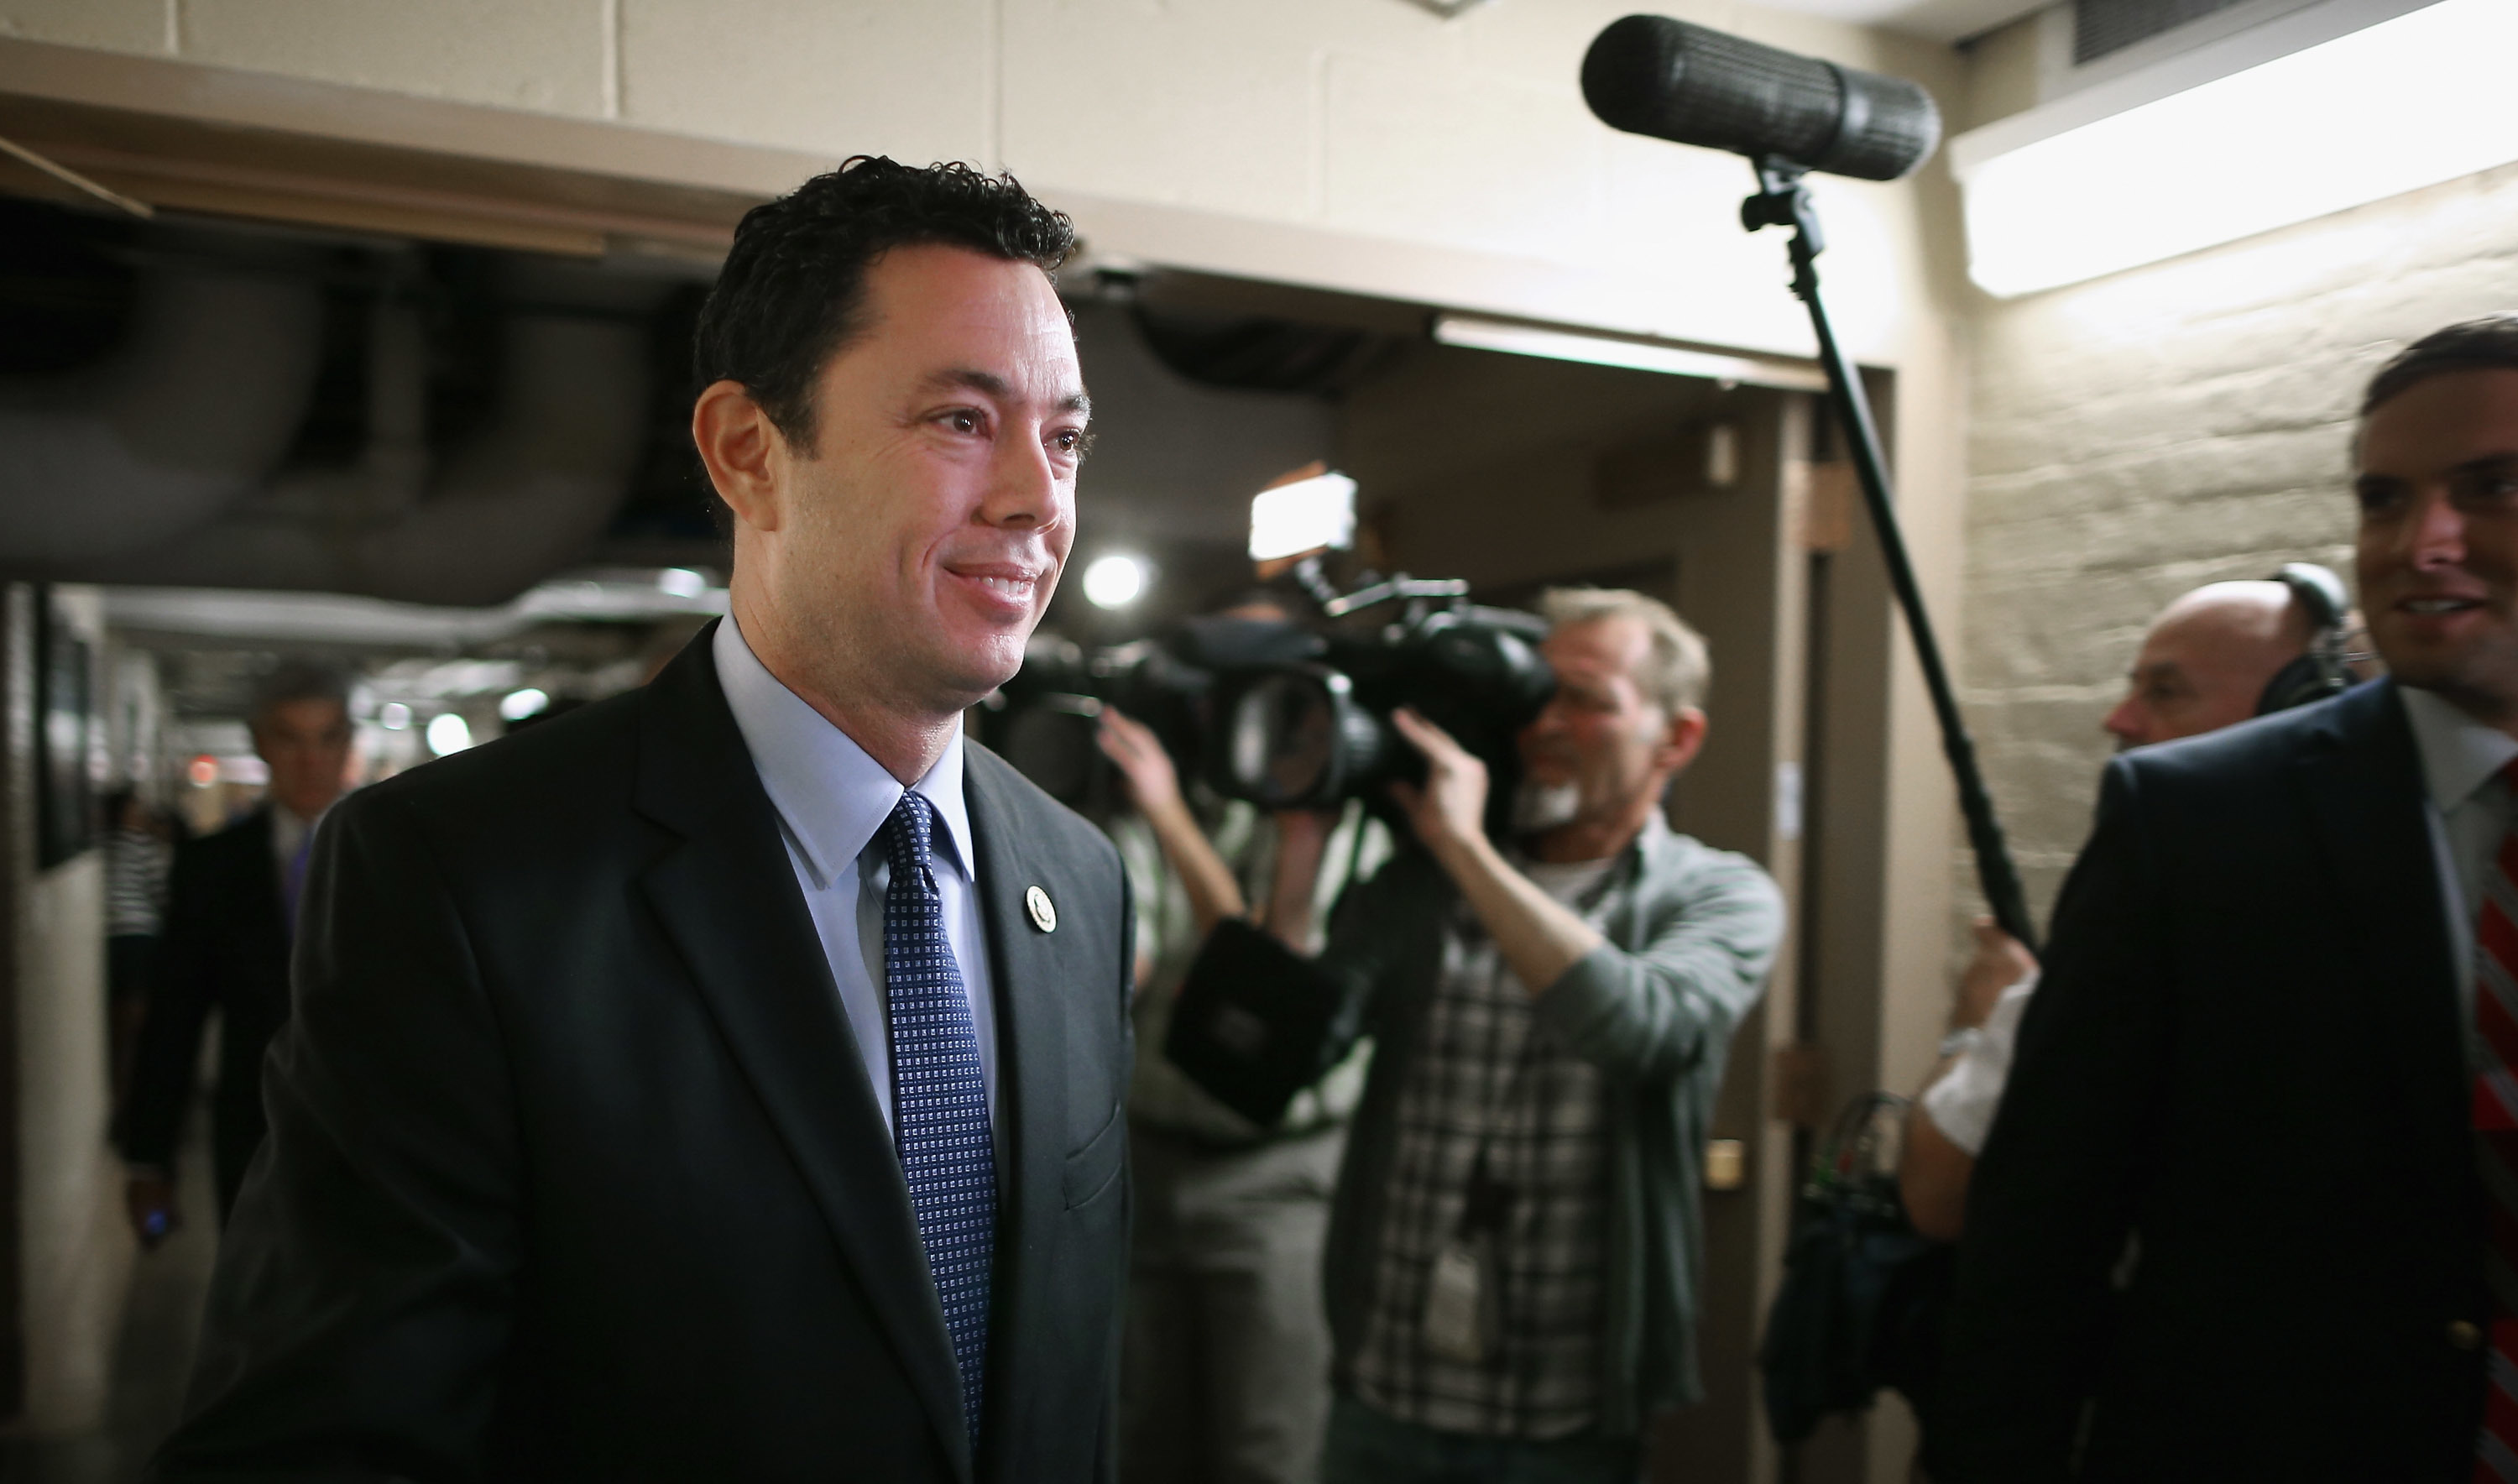 Chaffetz's June 30 Resignation Opens Oversight Chairmanship